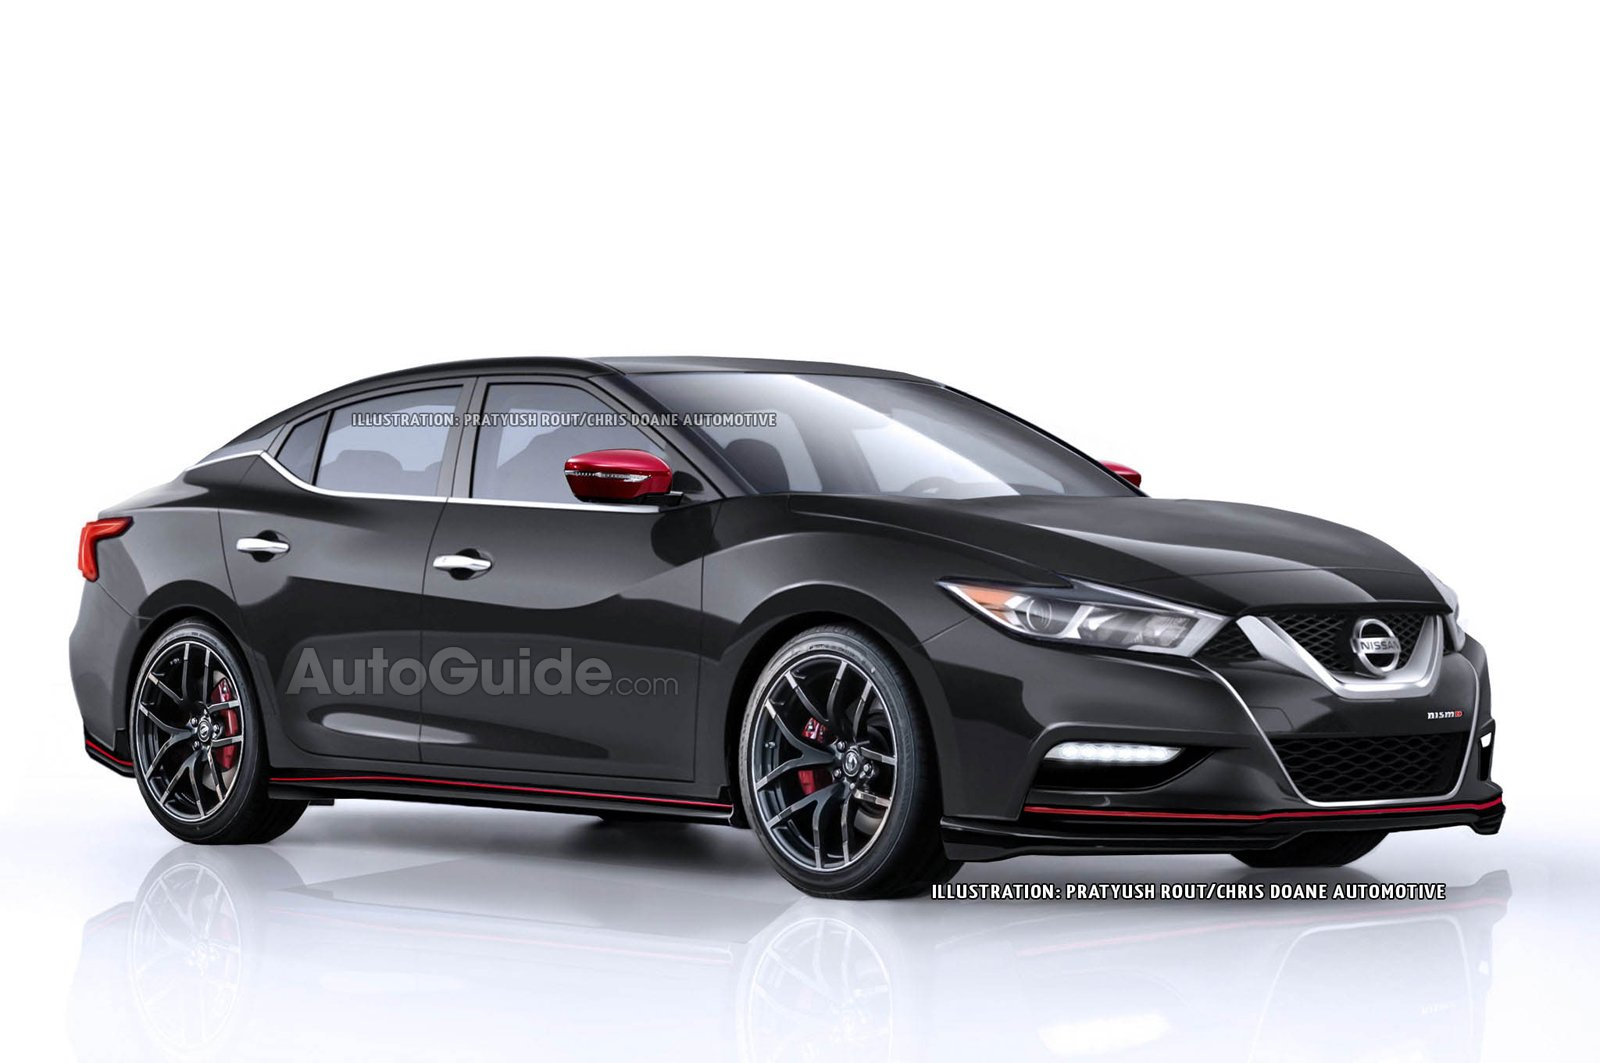 Nissan S Maxima Nismo Could Look This Good Autoguide Com News